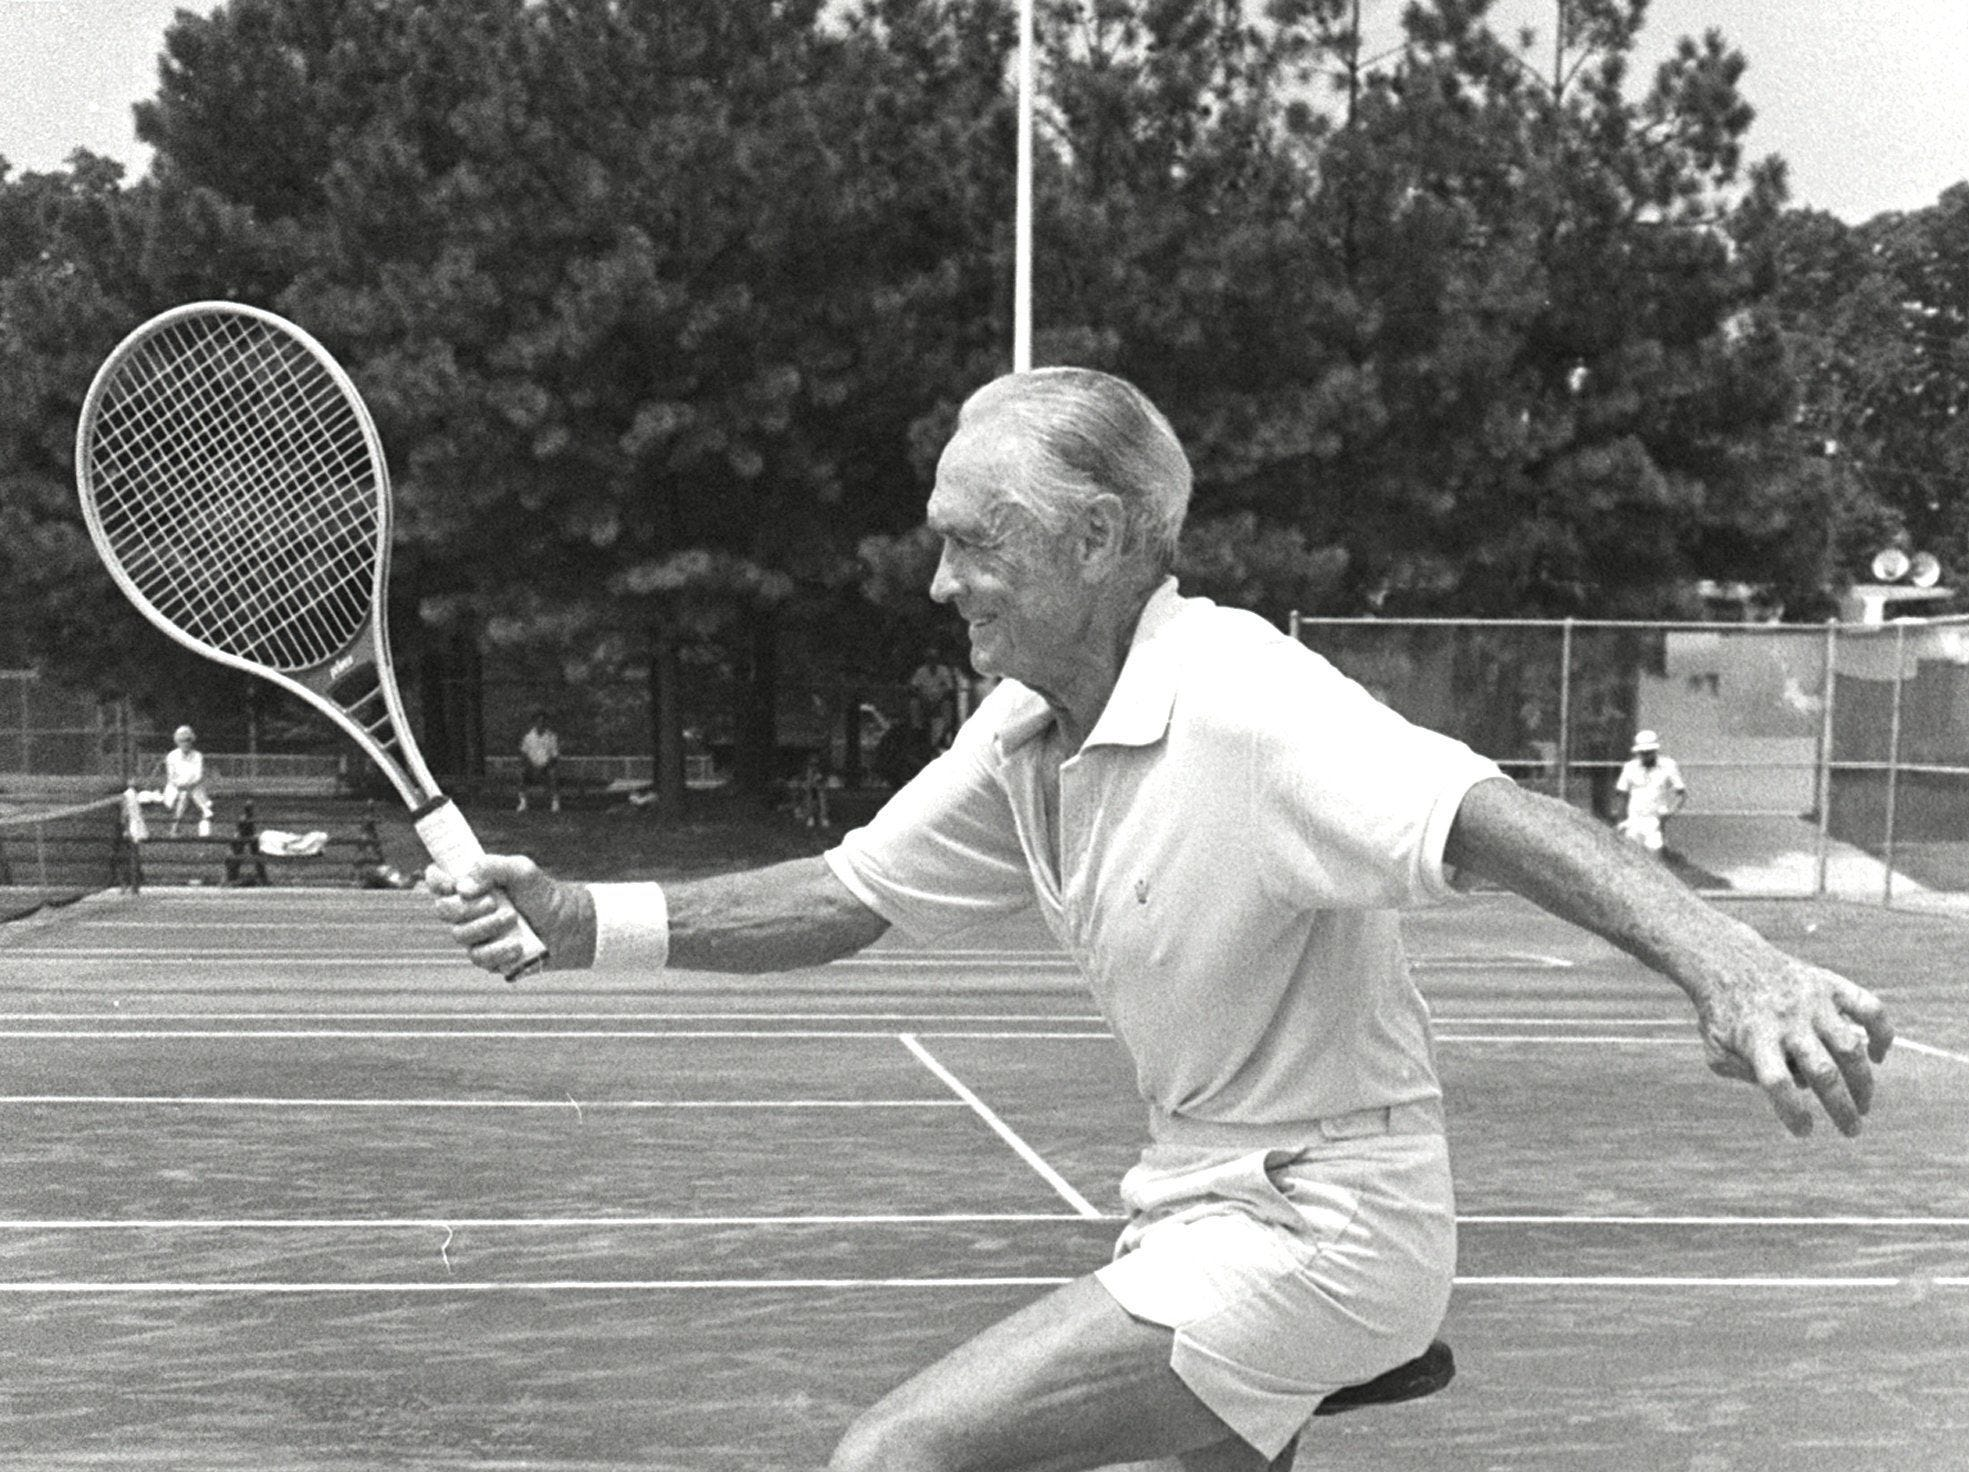 Paul W. Jones, 68, of Birmingham, Ala., likes to warm up for his tennis matches by riding a unicycle. Jones is competing in the Mississippi Valley Adult Tennis Tournament during August 1979.